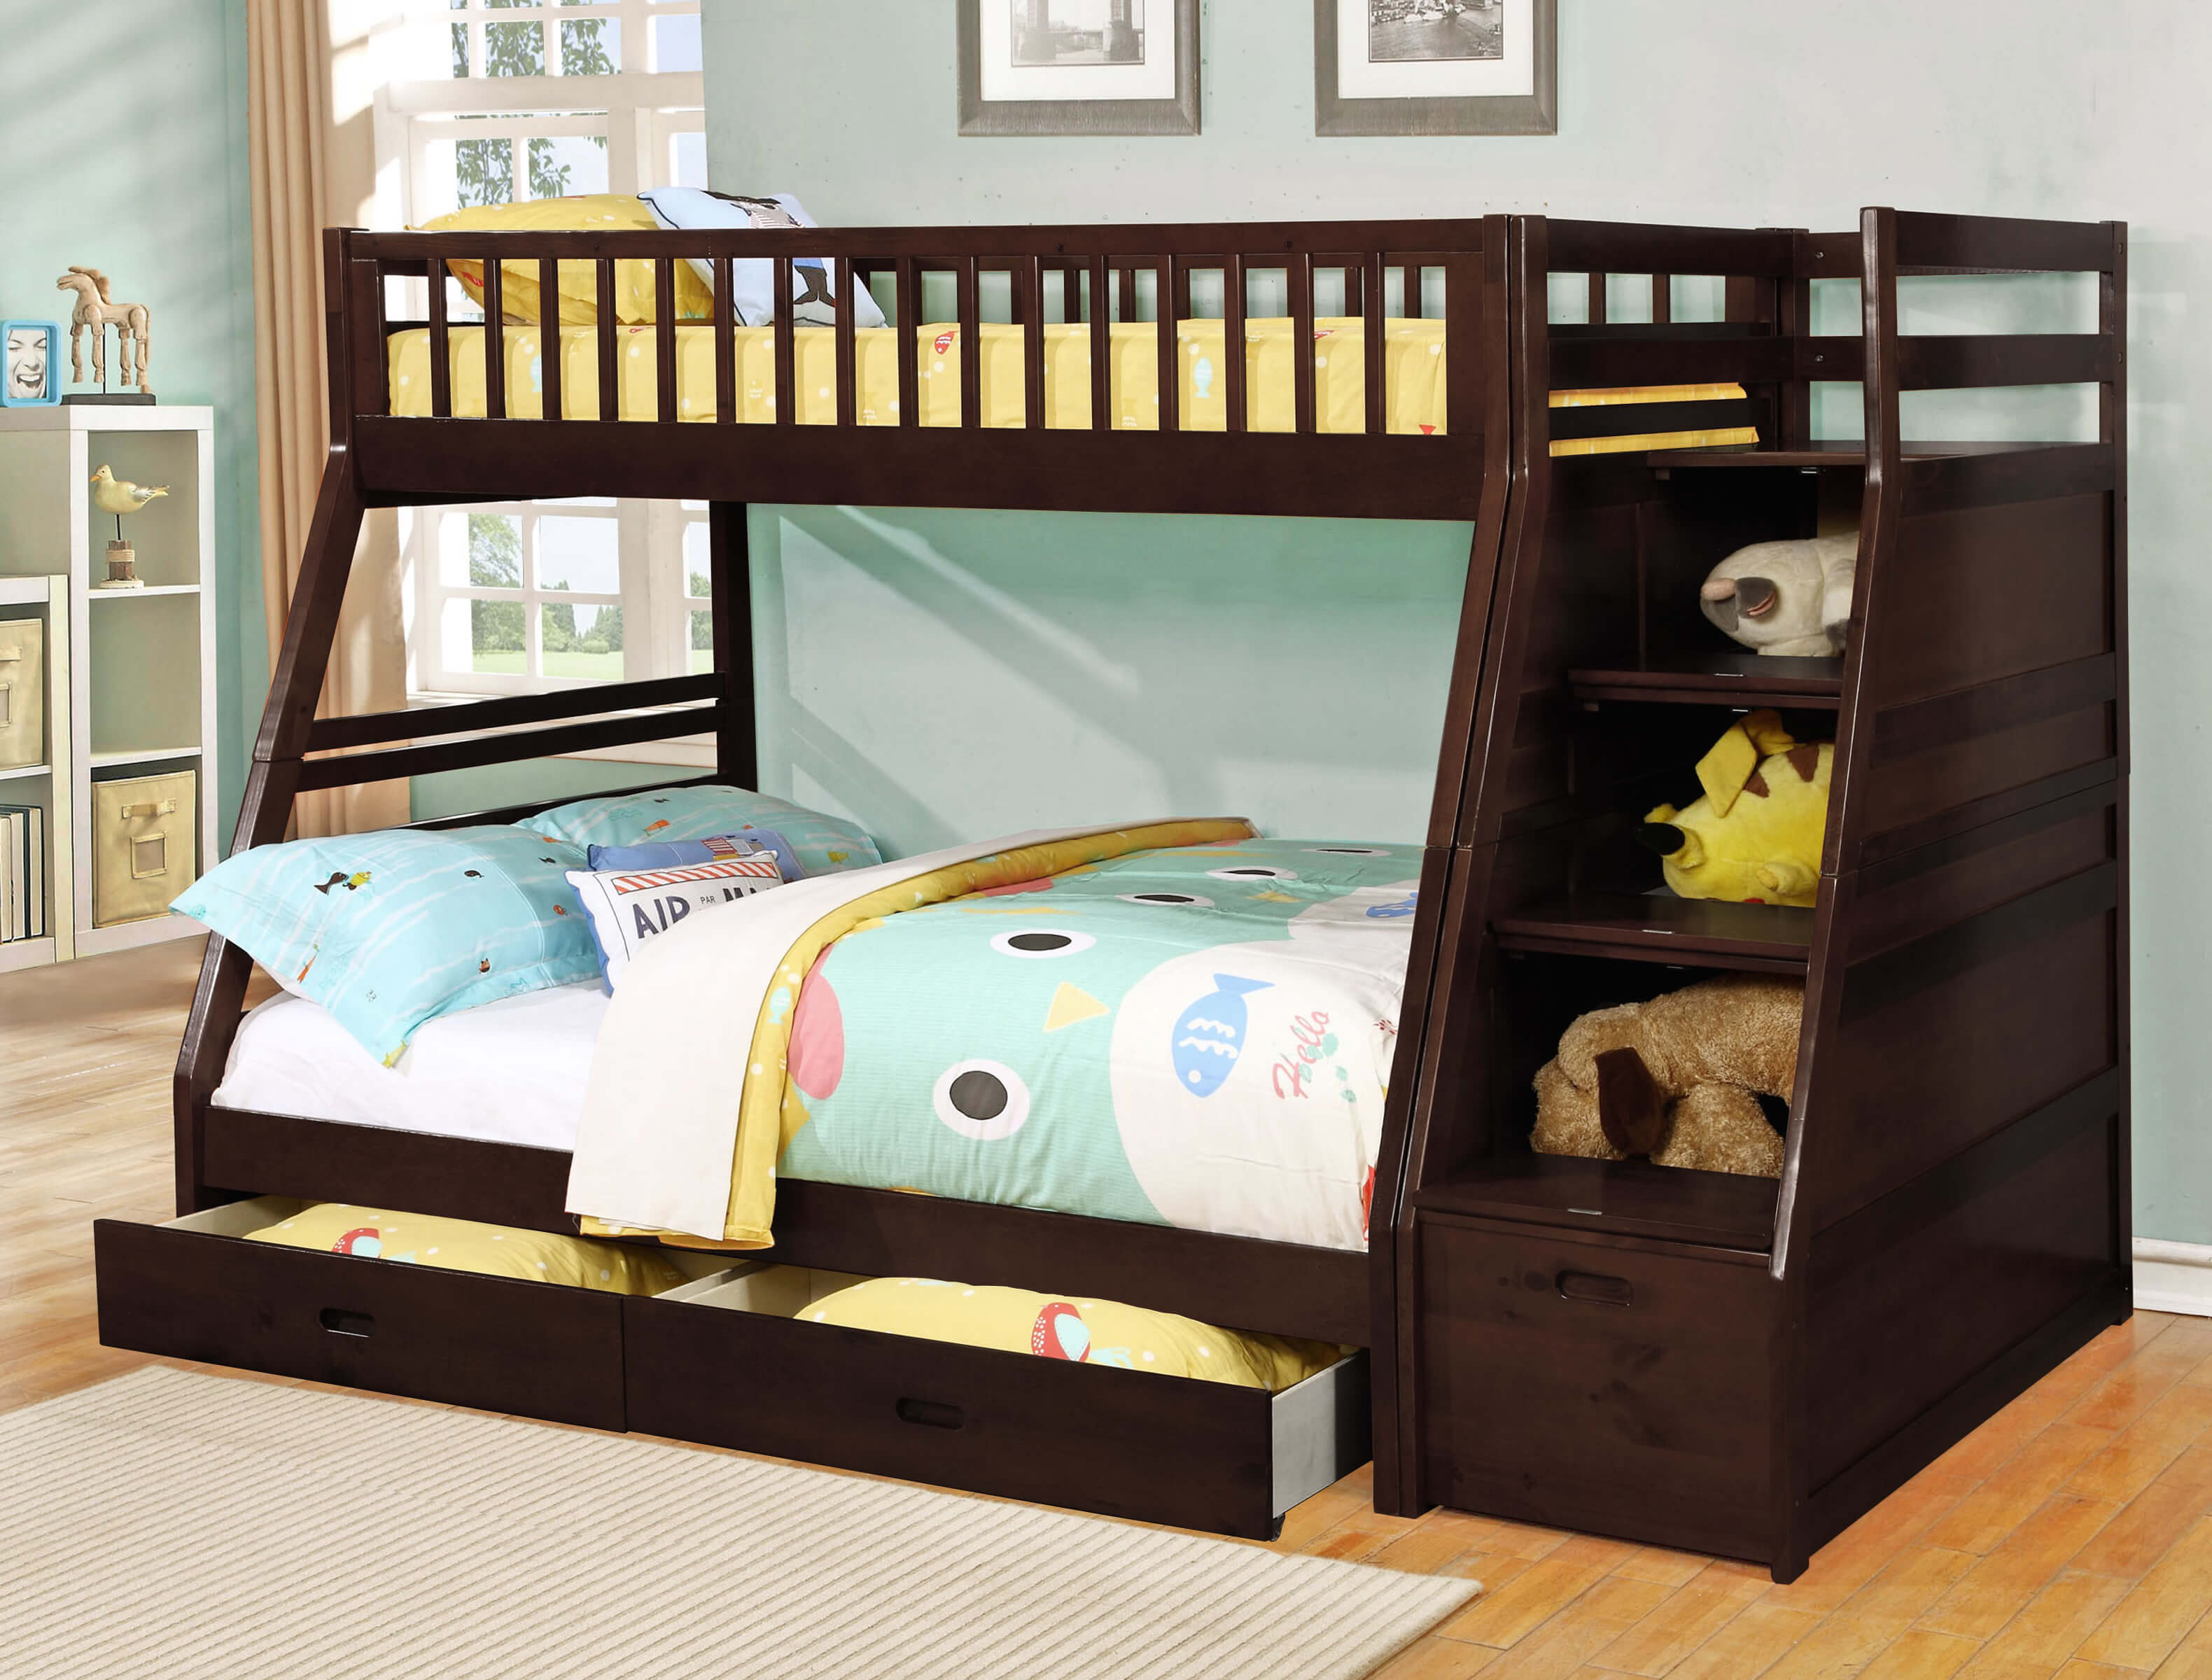 fancy sofa sets personalized kids 24 designs of bunk beds with steps (kids love these)